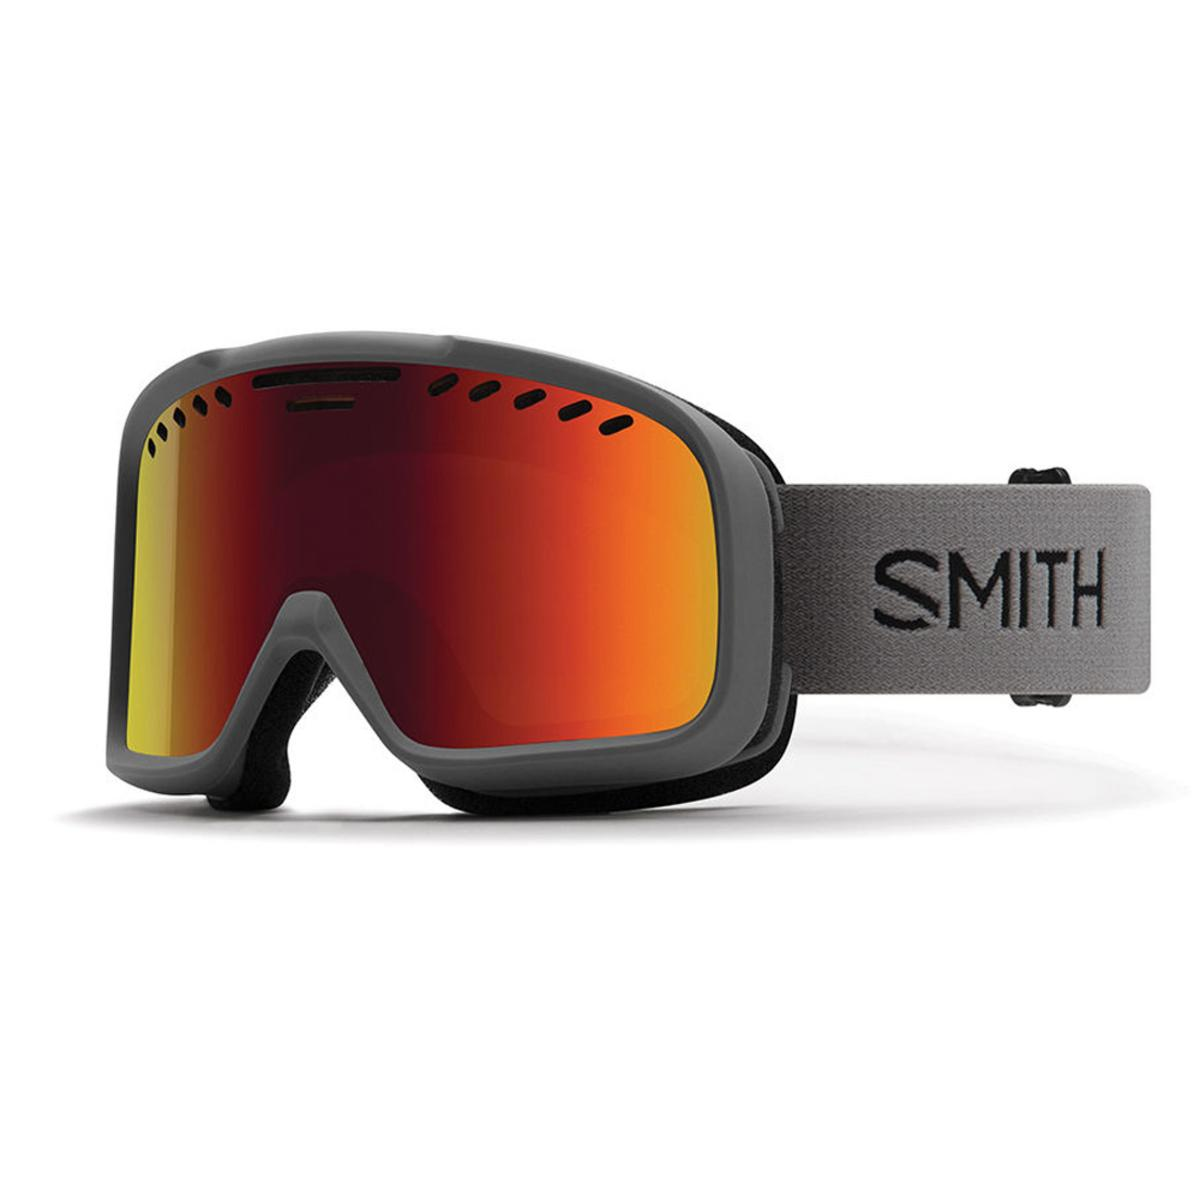 eb57354a25df5 Smith Optics Project Snow Goggles - Charcoal Frame - The Warming Store